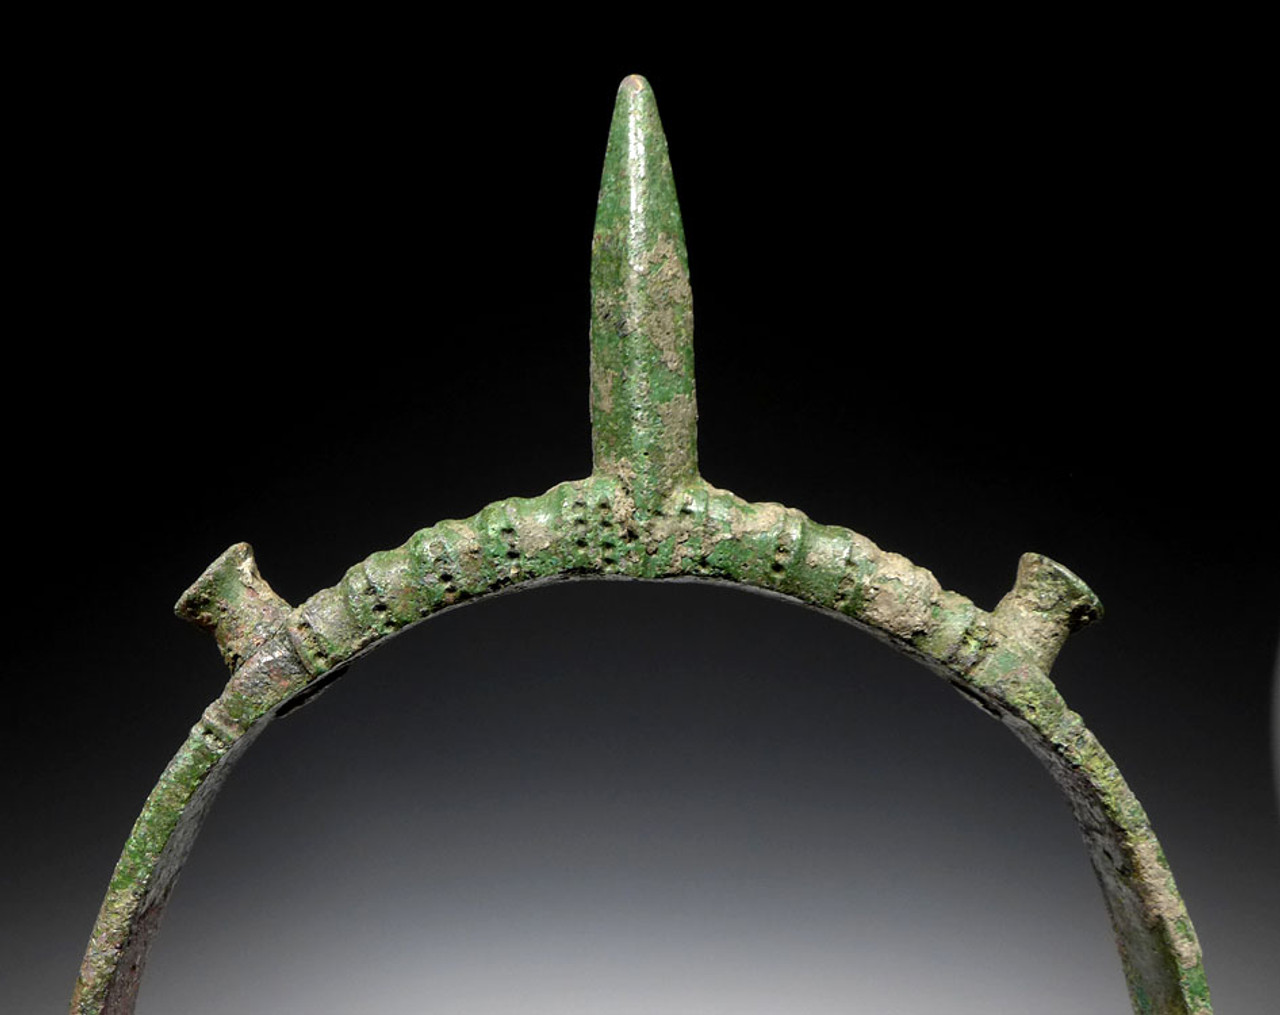 COMPLETE ANCIENT ROMAN DECORATED BRONZE PRICK SPUR FROM A MOUNTED CAVALRY WARRIOR OF STATUS *R152